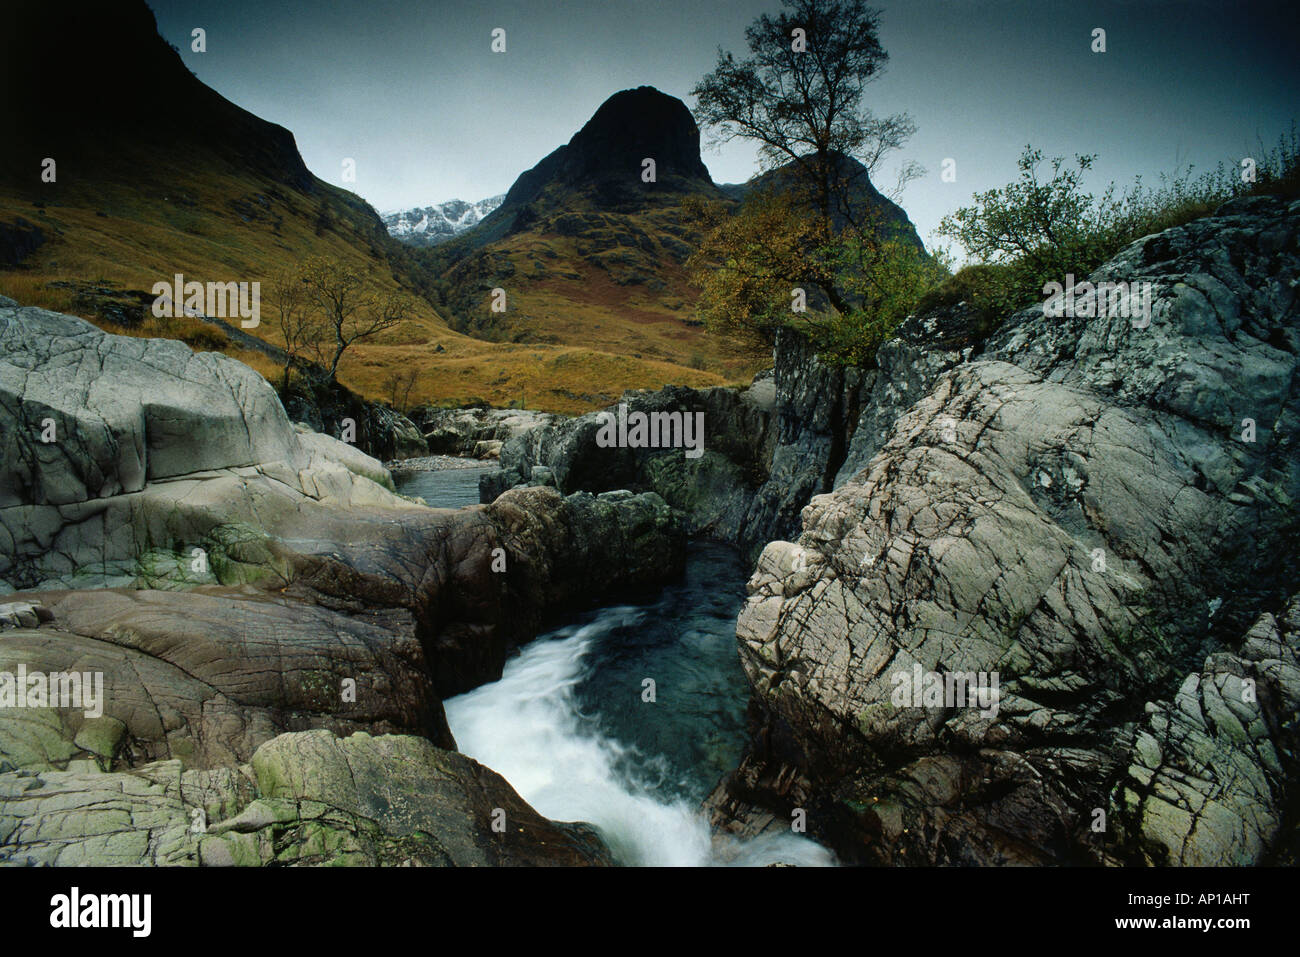 Glen Coe, considered to be one of the most spectacular and beautiful places in Scotland, Highlands, Scotland, Great - Stock Image